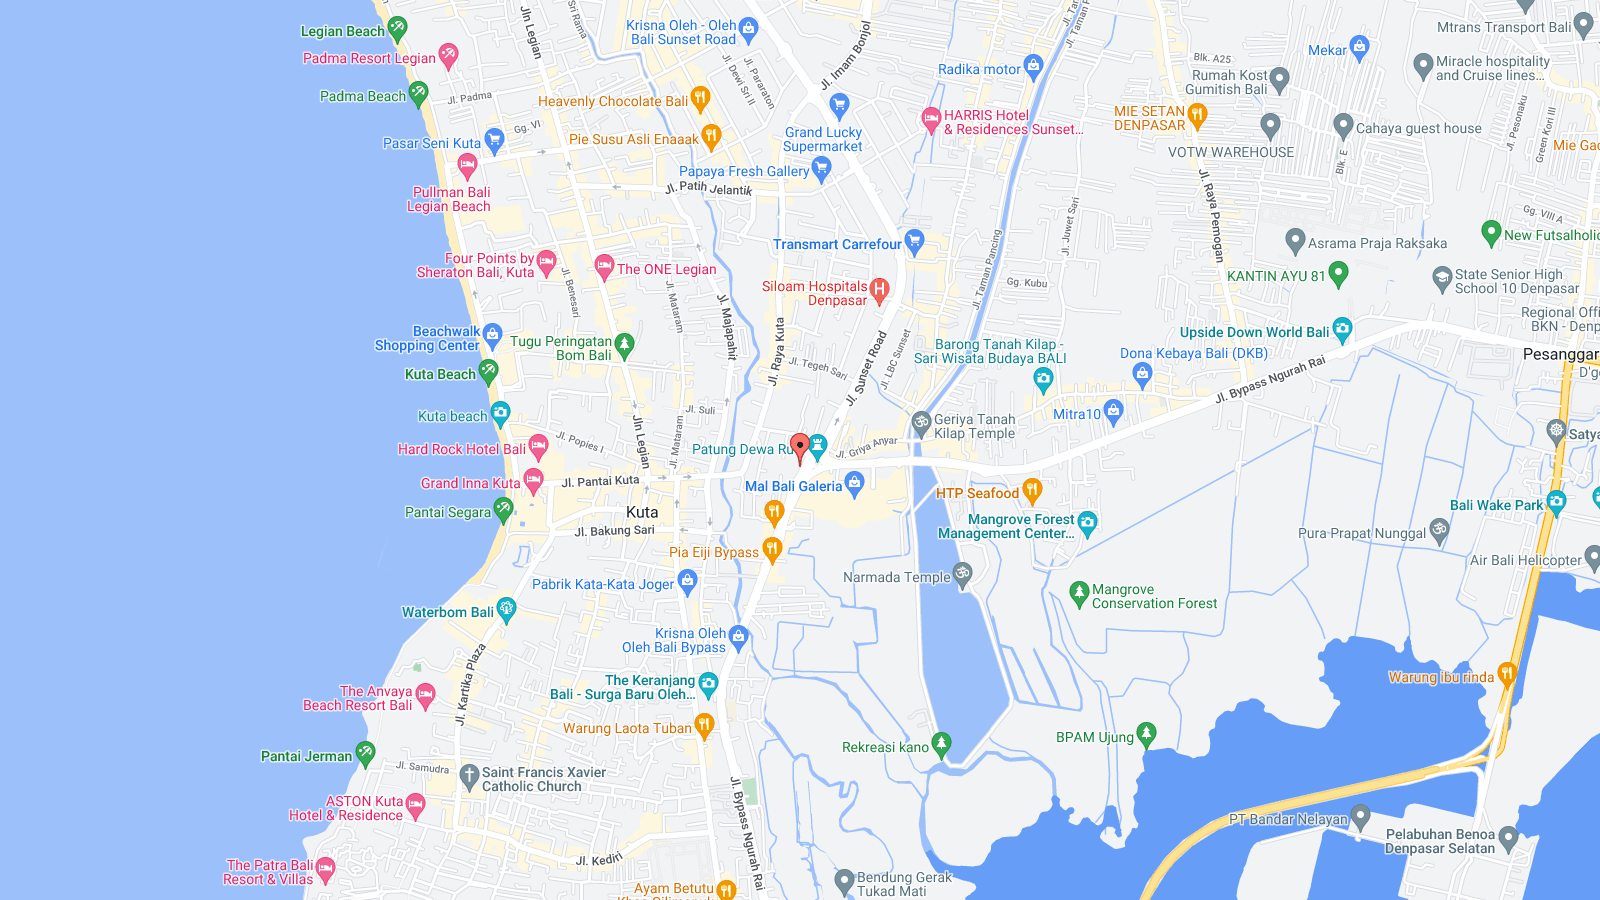 Location Map of Chinese Dragon Reflexology Kuta Bali island,Kuta Chinese Dragon Reflexology Location map,Kuta Chinese Dragon Reflexology accommodation destinations attractions hotels map